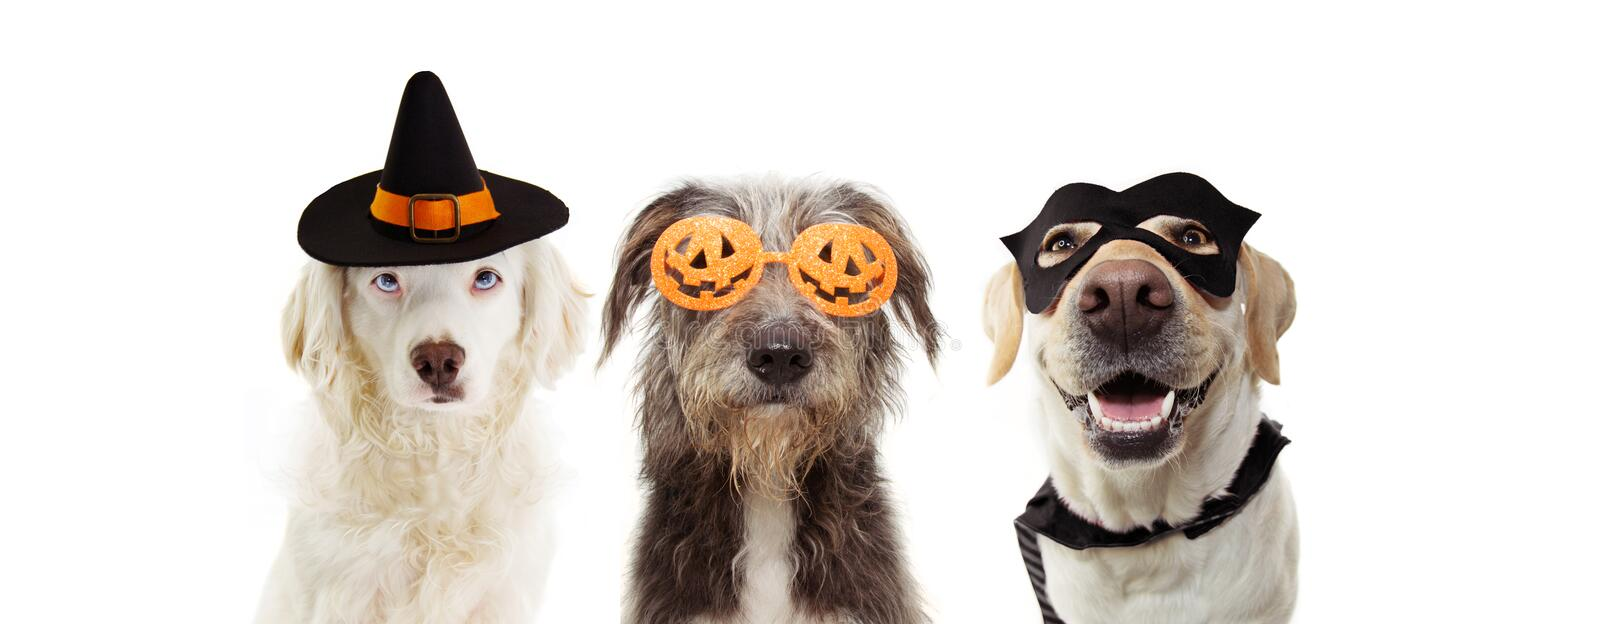 Banner three puppy dogs celebrating halloween wearing pumpkin orange glasses, hero and witch costume. Isolated on white background royalty free stock images